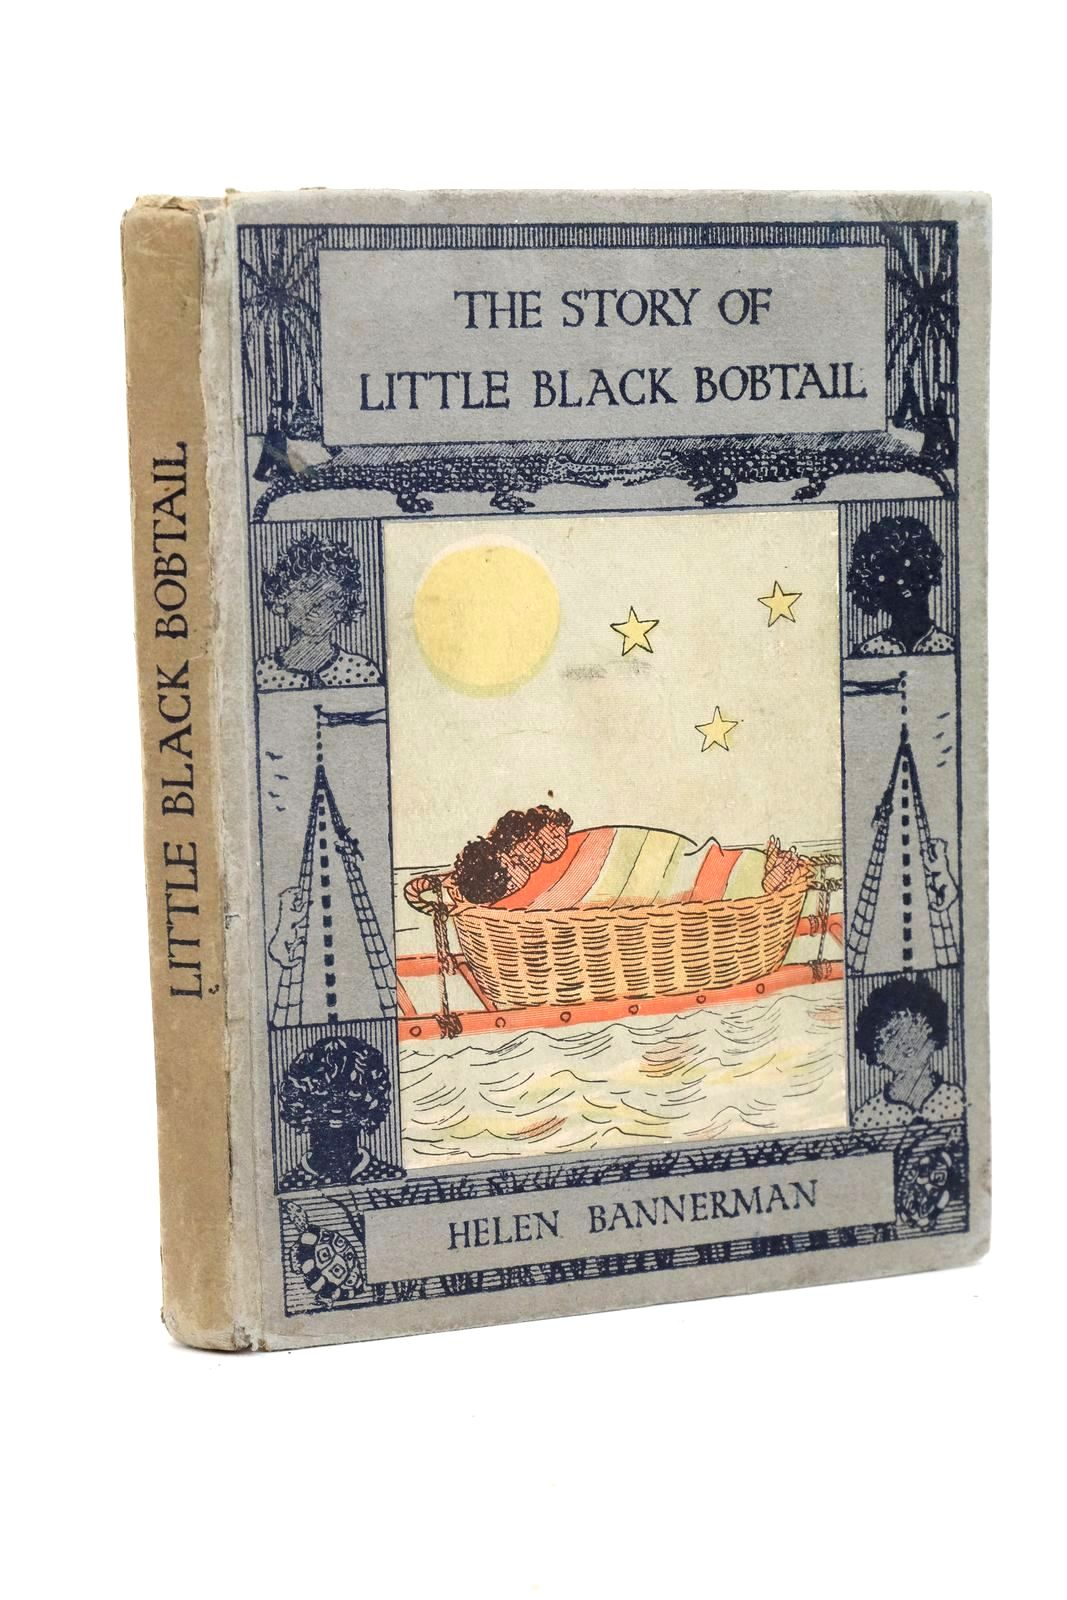 Photo of THE STORY OF LITTLE BLACK BOBTAIL written by Bannerman, Helen illustrated by Bannerman, Helen published by Nisbet & Co. Ltd. (STOCK CODE: 1321155)  for sale by Stella & Rose's Books